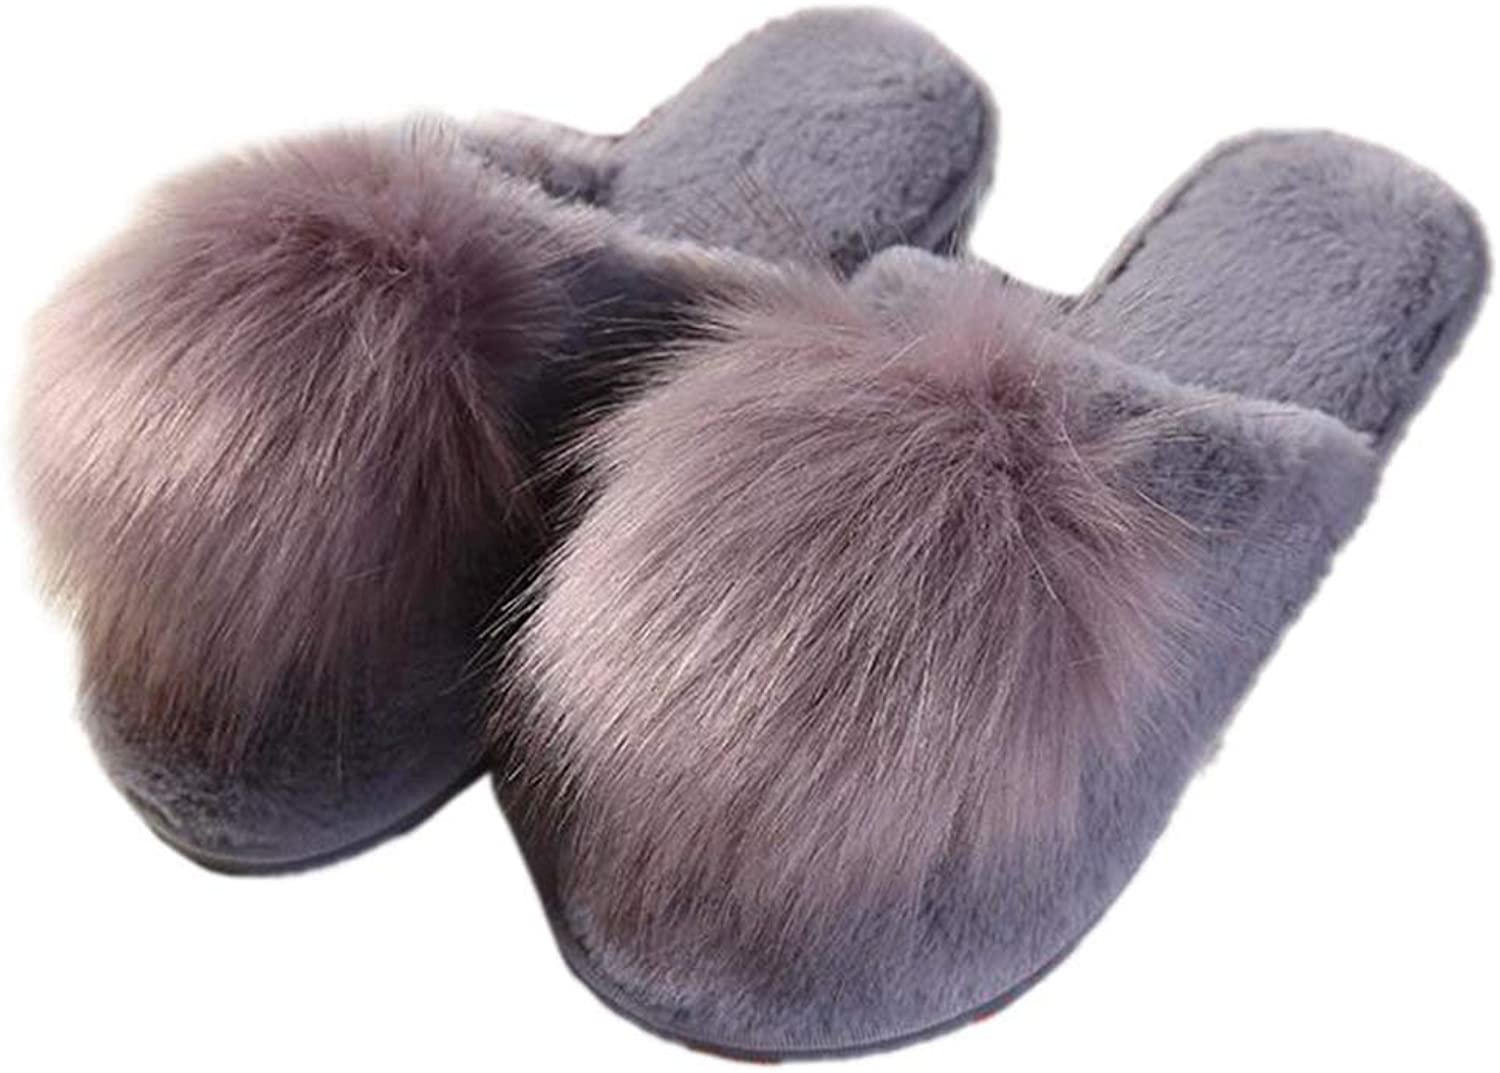 Winter Fur Slippers Soft Plush Ball Room Fluffy Flip Flops Warm Indoor Home Basic Footwear Women Bedroom Cozy shoes